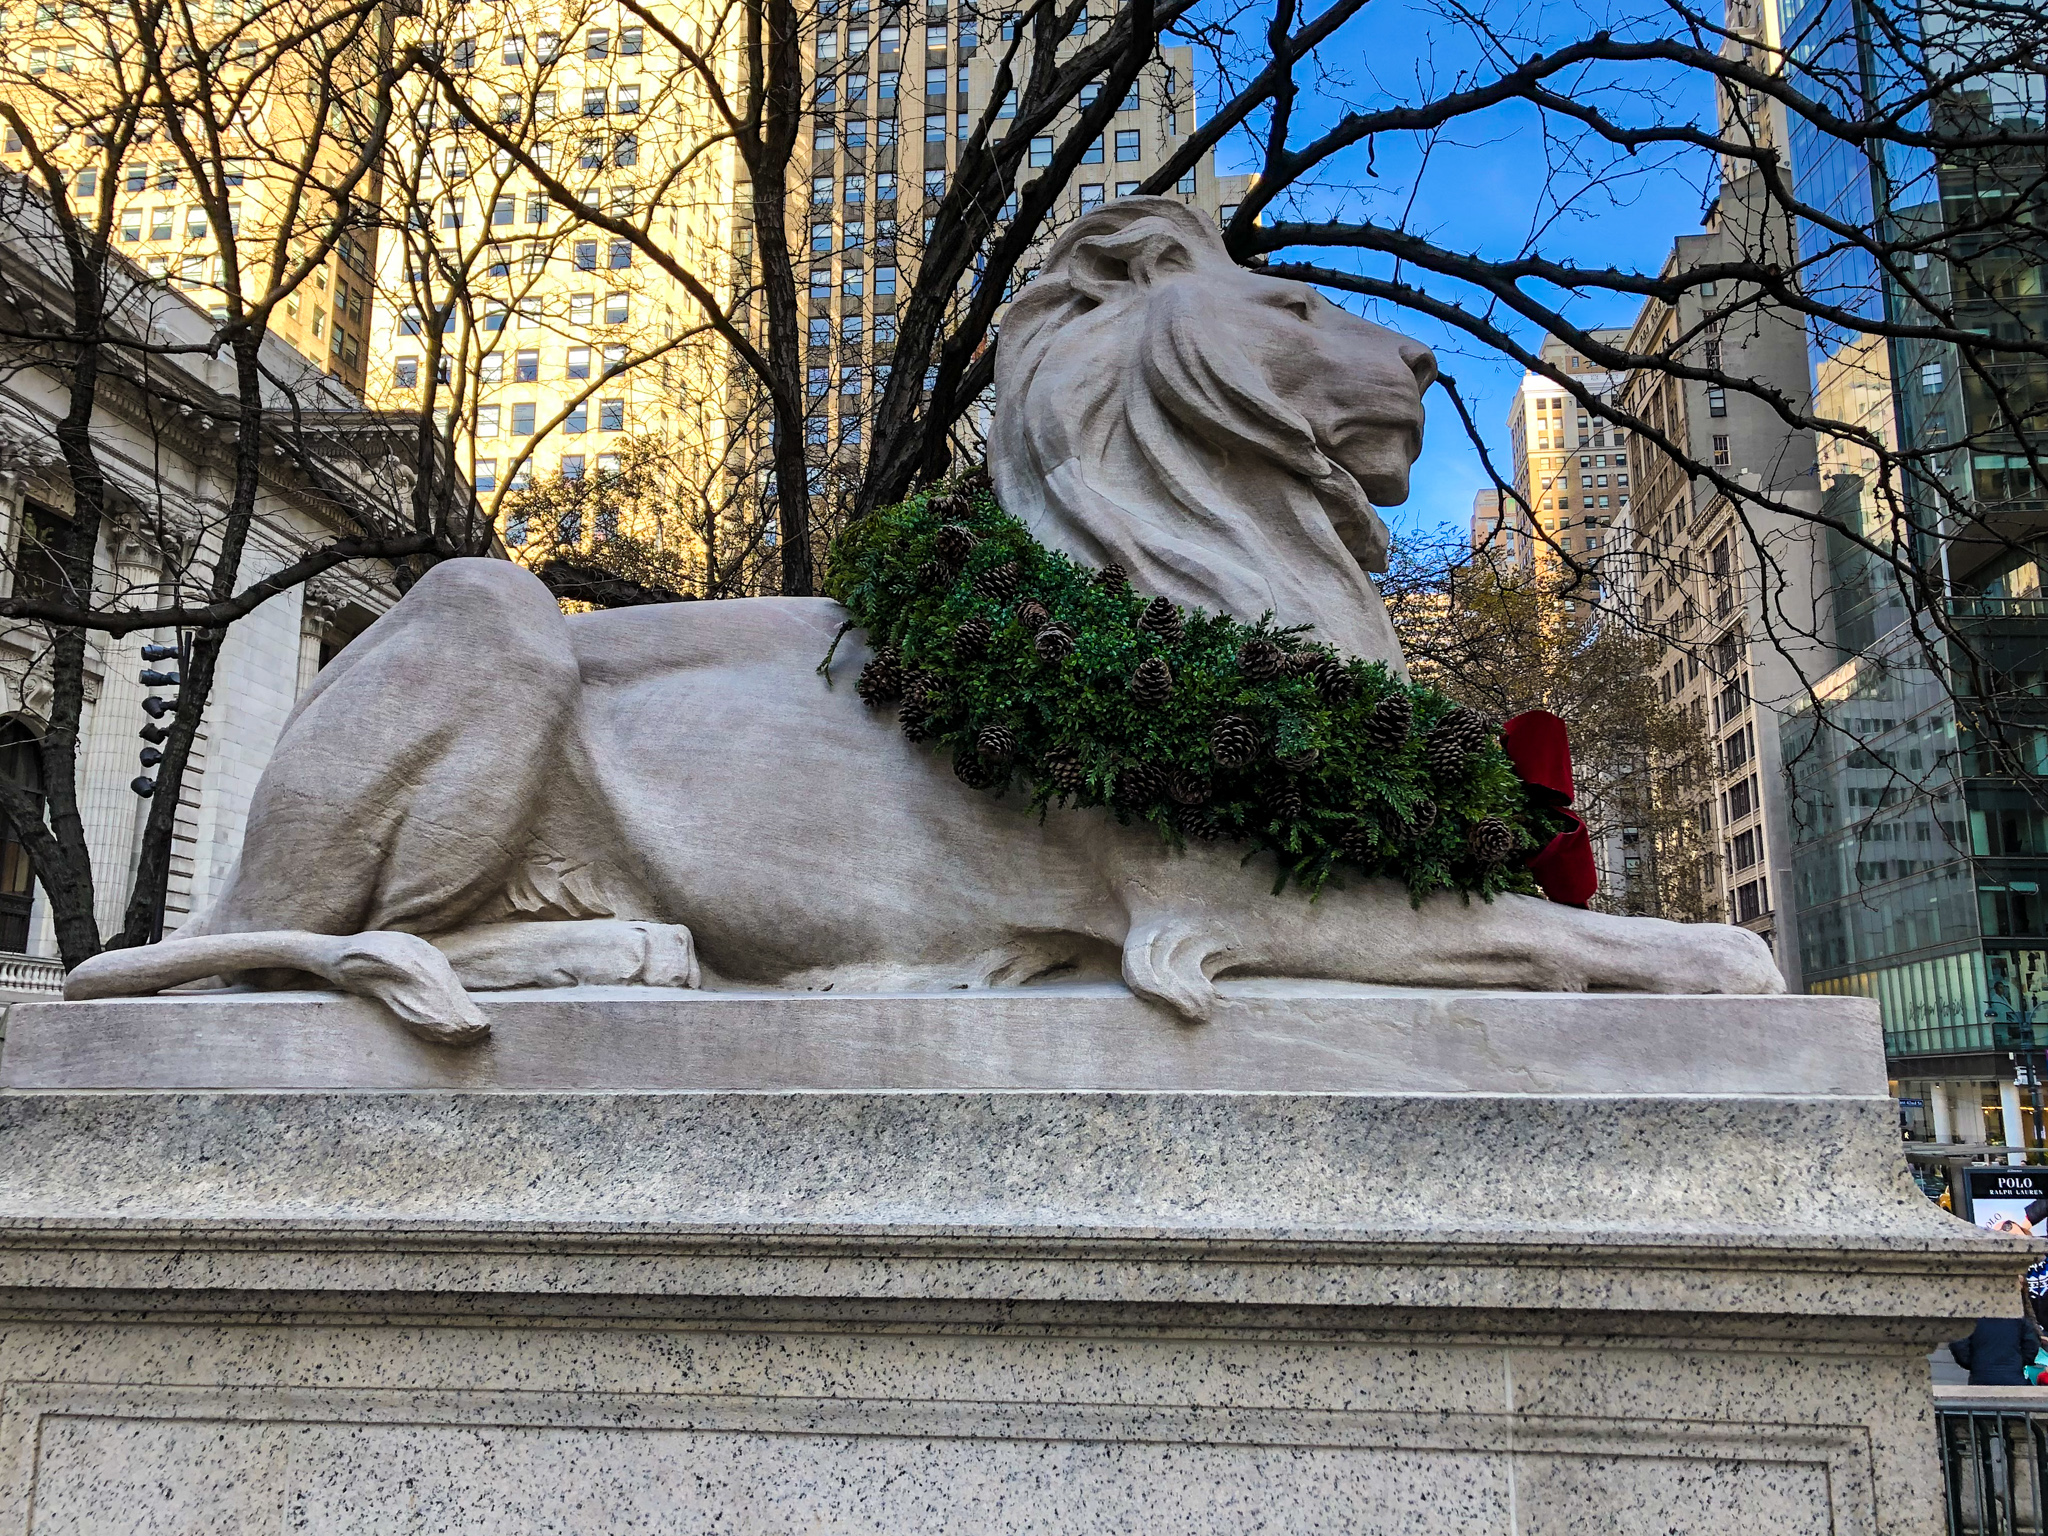 planning a trip to new york in december means seeing the nycpl lions